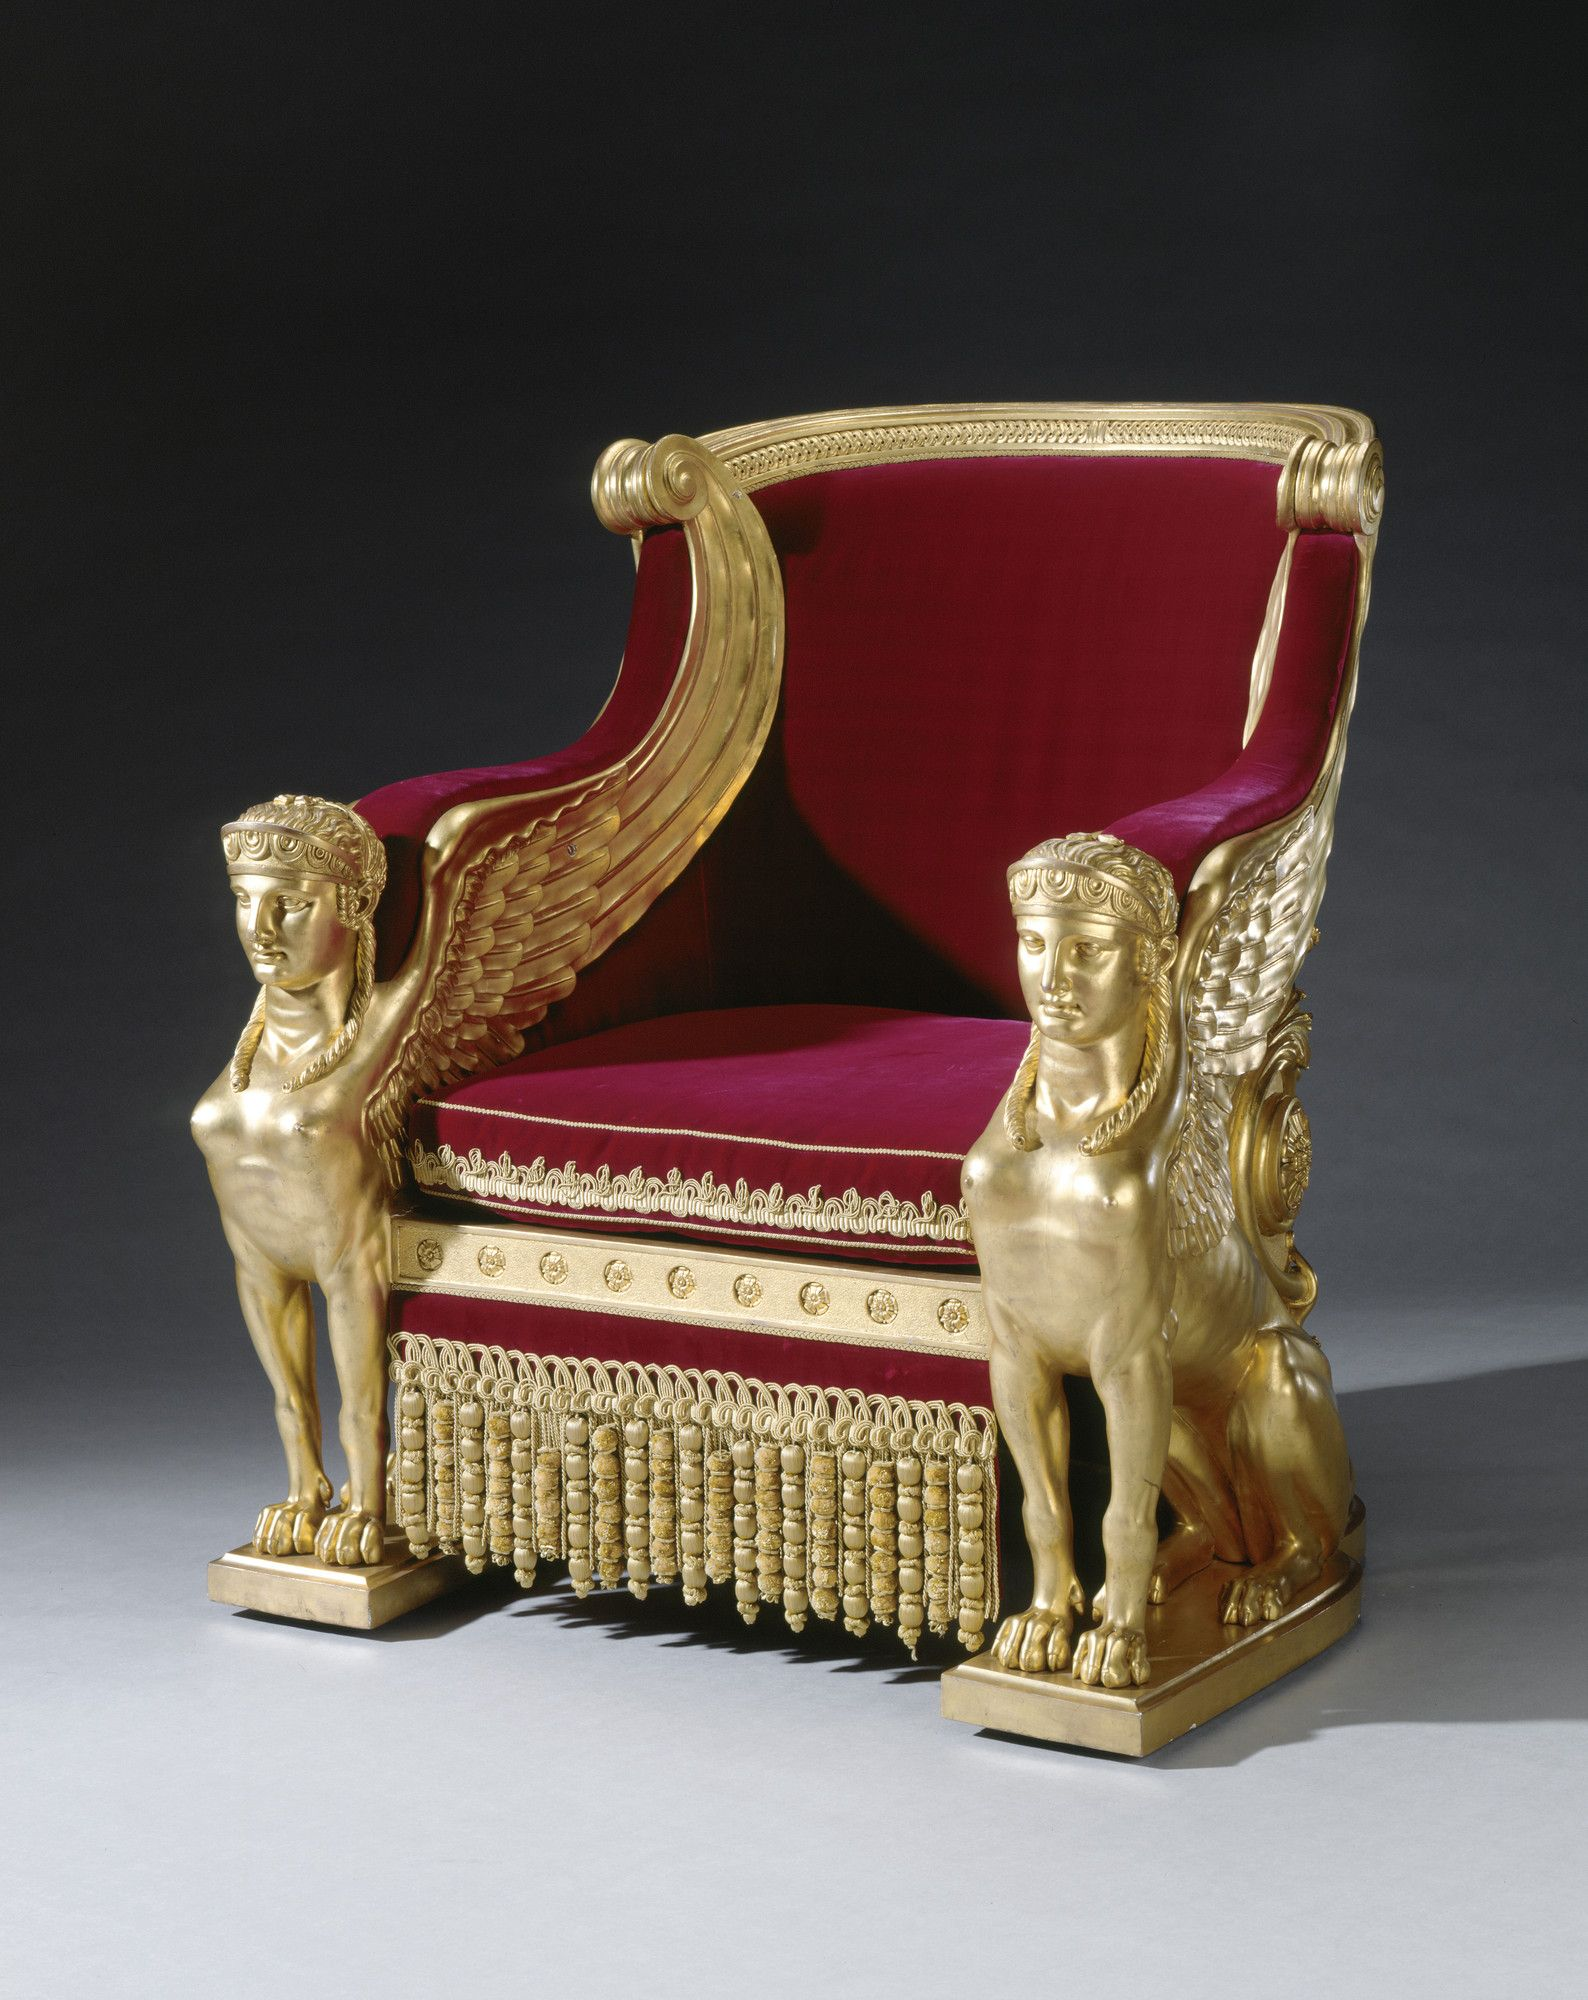 Furniture rome ancient roman furniture chairs it is a chair with - Pair Of Council Chairs By Tatham Bailey Sanders 1812 Giltwood Sanders Furniturethrone Chairthe